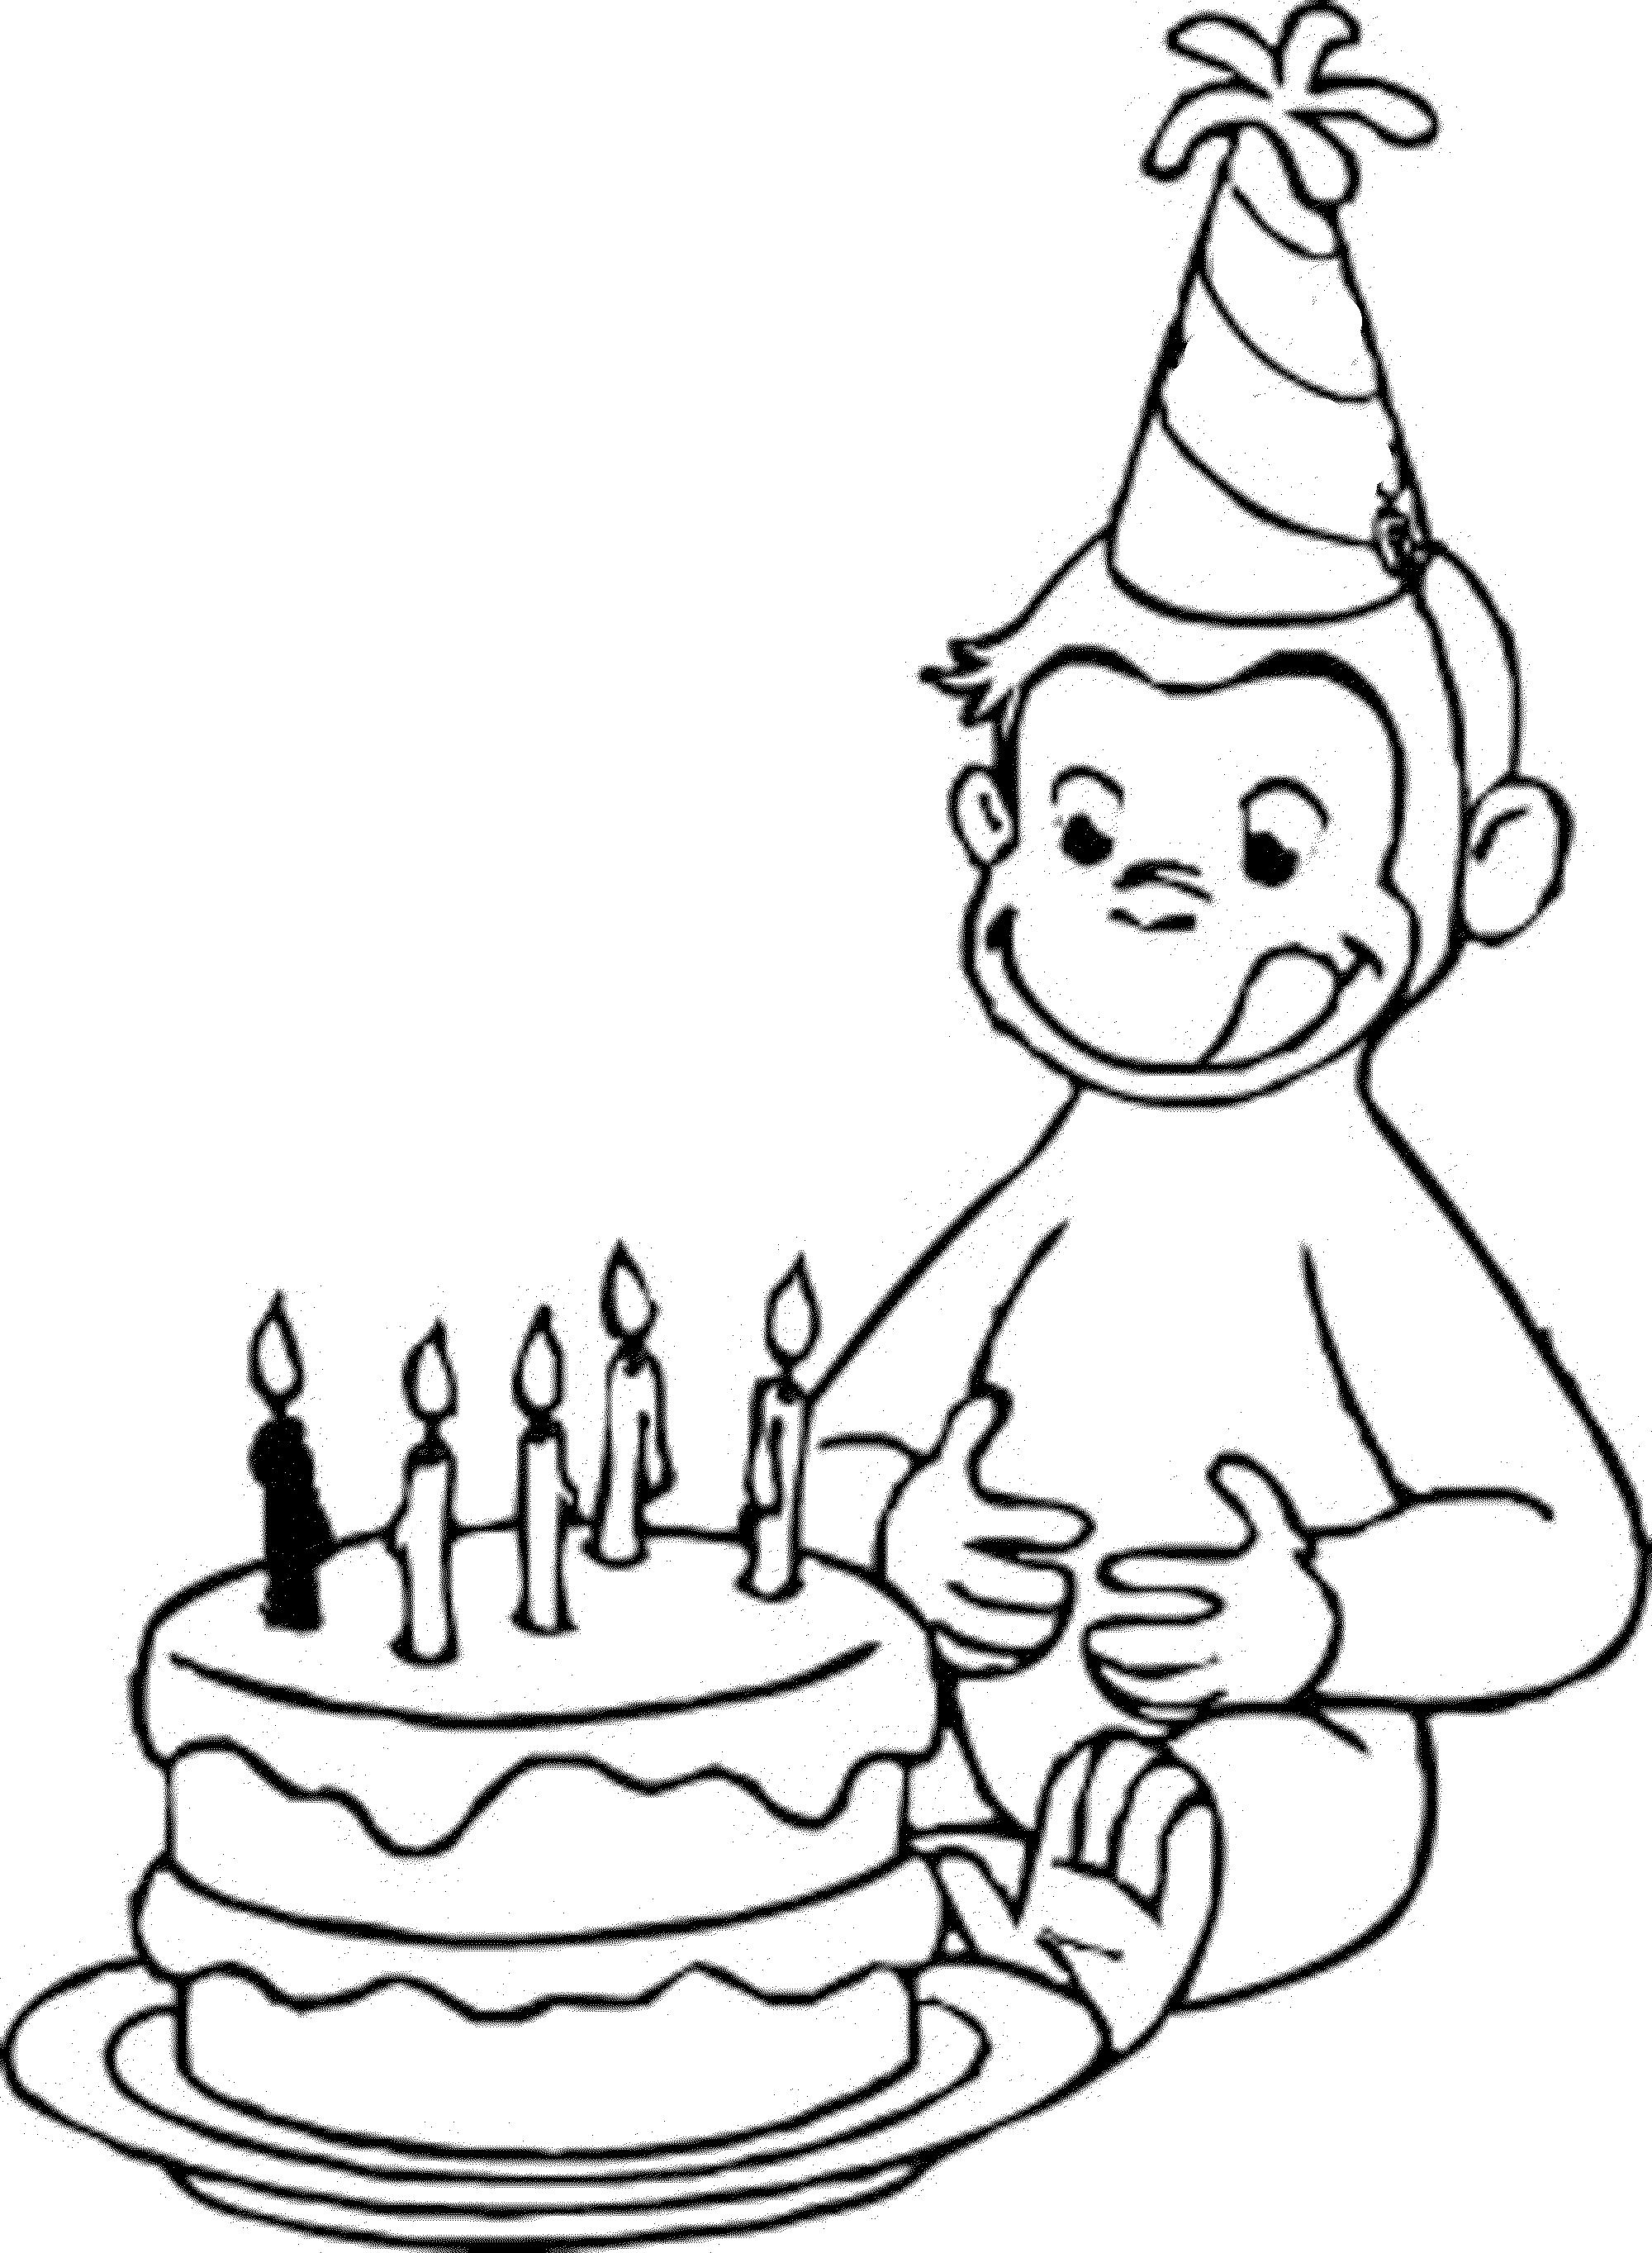 disney happy birthday coloring pages disney birthday coloring pages coloring home pages disney birthday coloring happy